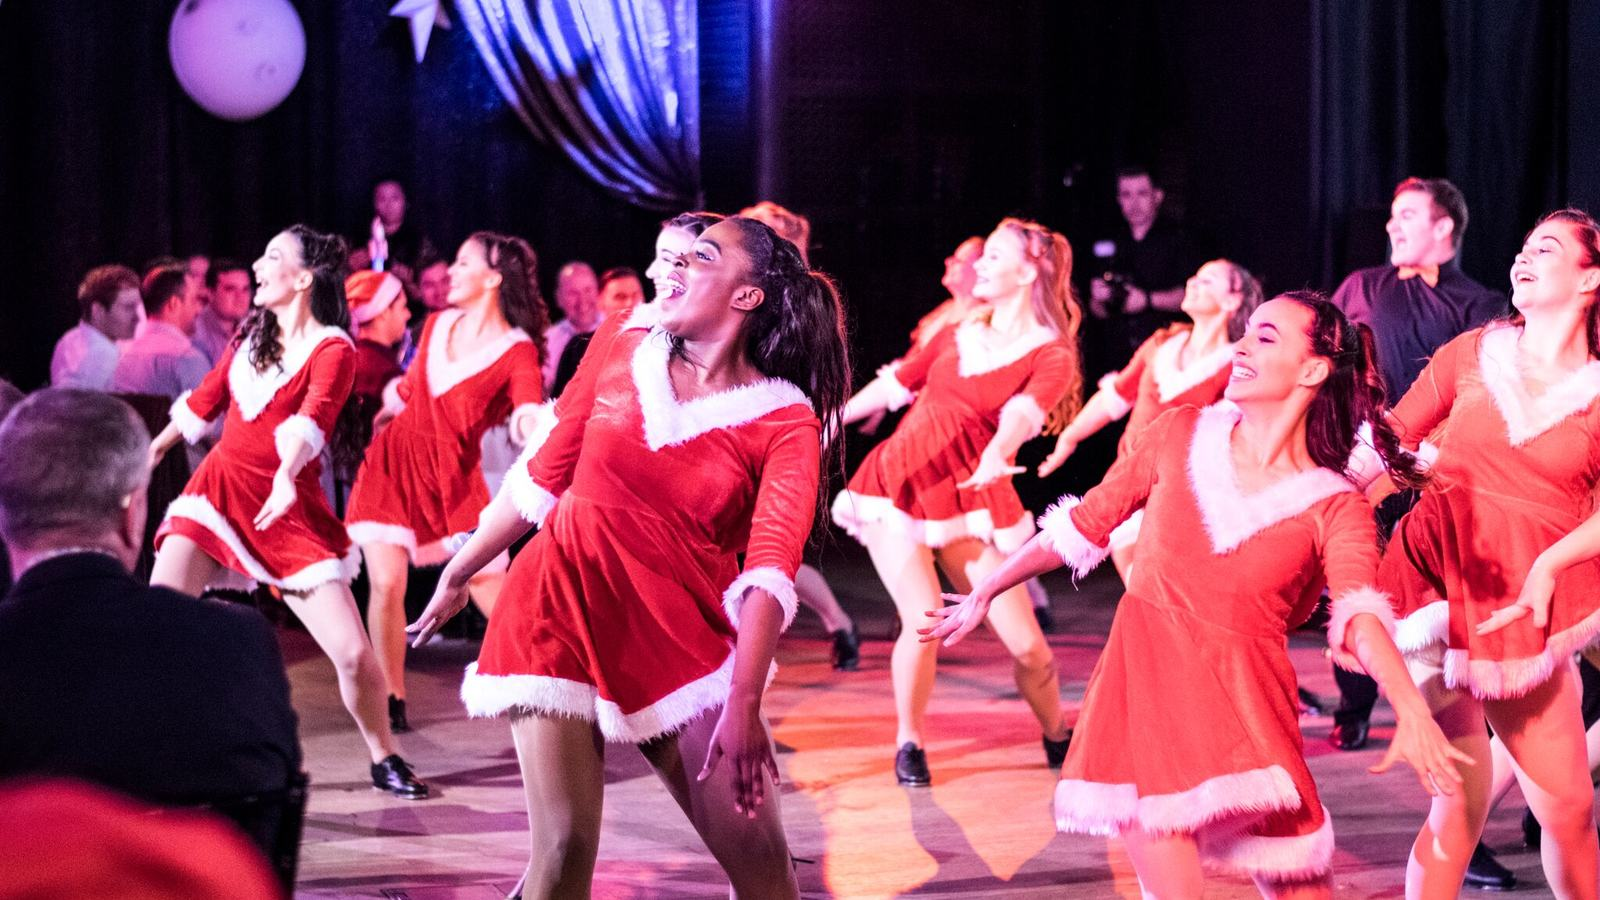 Dancers at Snow Ball, Southbank Centre